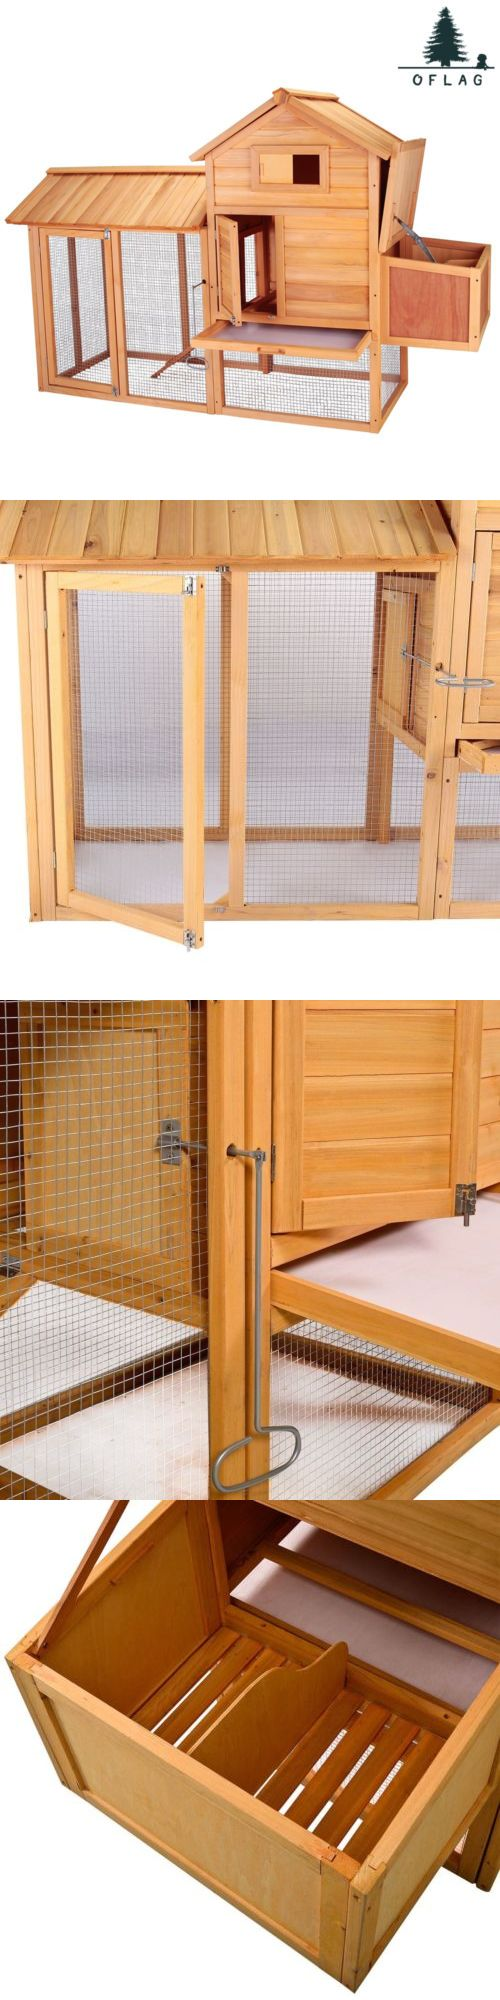 Backyard Poultry Supplies 177801: New Chicken Coop 83Hen House Rabbit Hutch Small Pet Animal Poultry Cage W/ Nest BUY IT NOW ONLY: $170.99